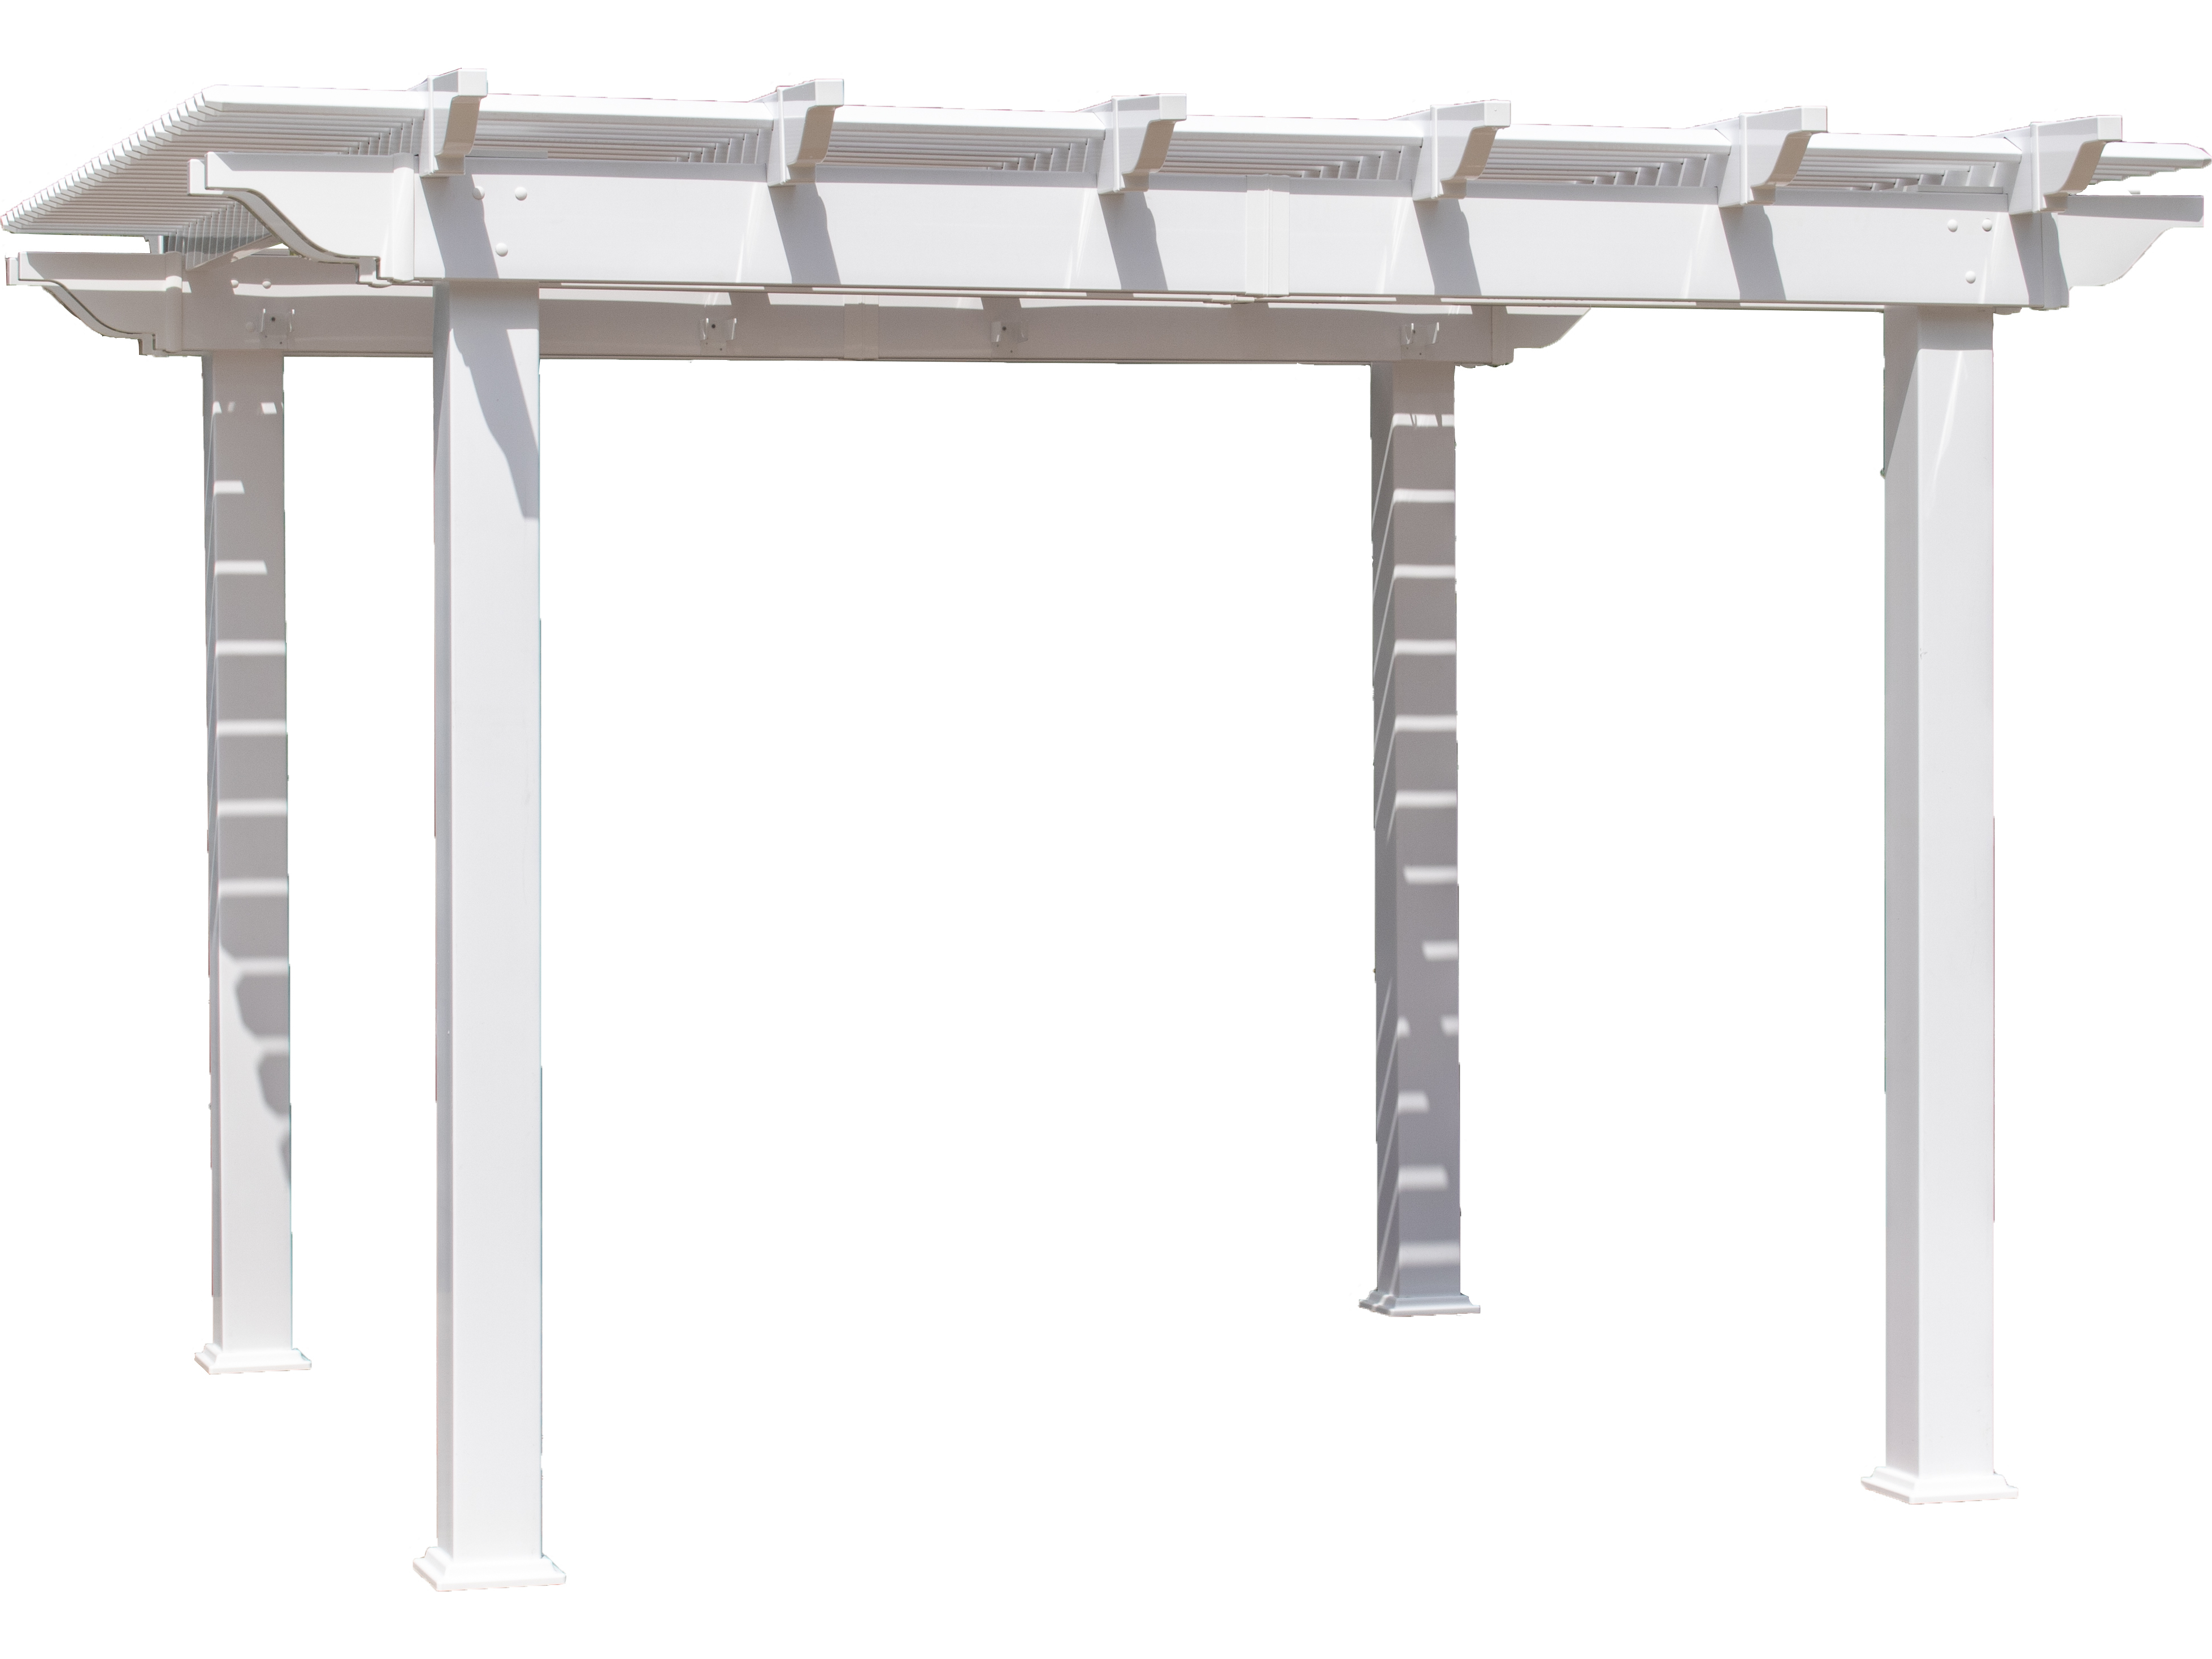 berlin gardens bradford 12 x 12 pergola with curtain rods and curtains